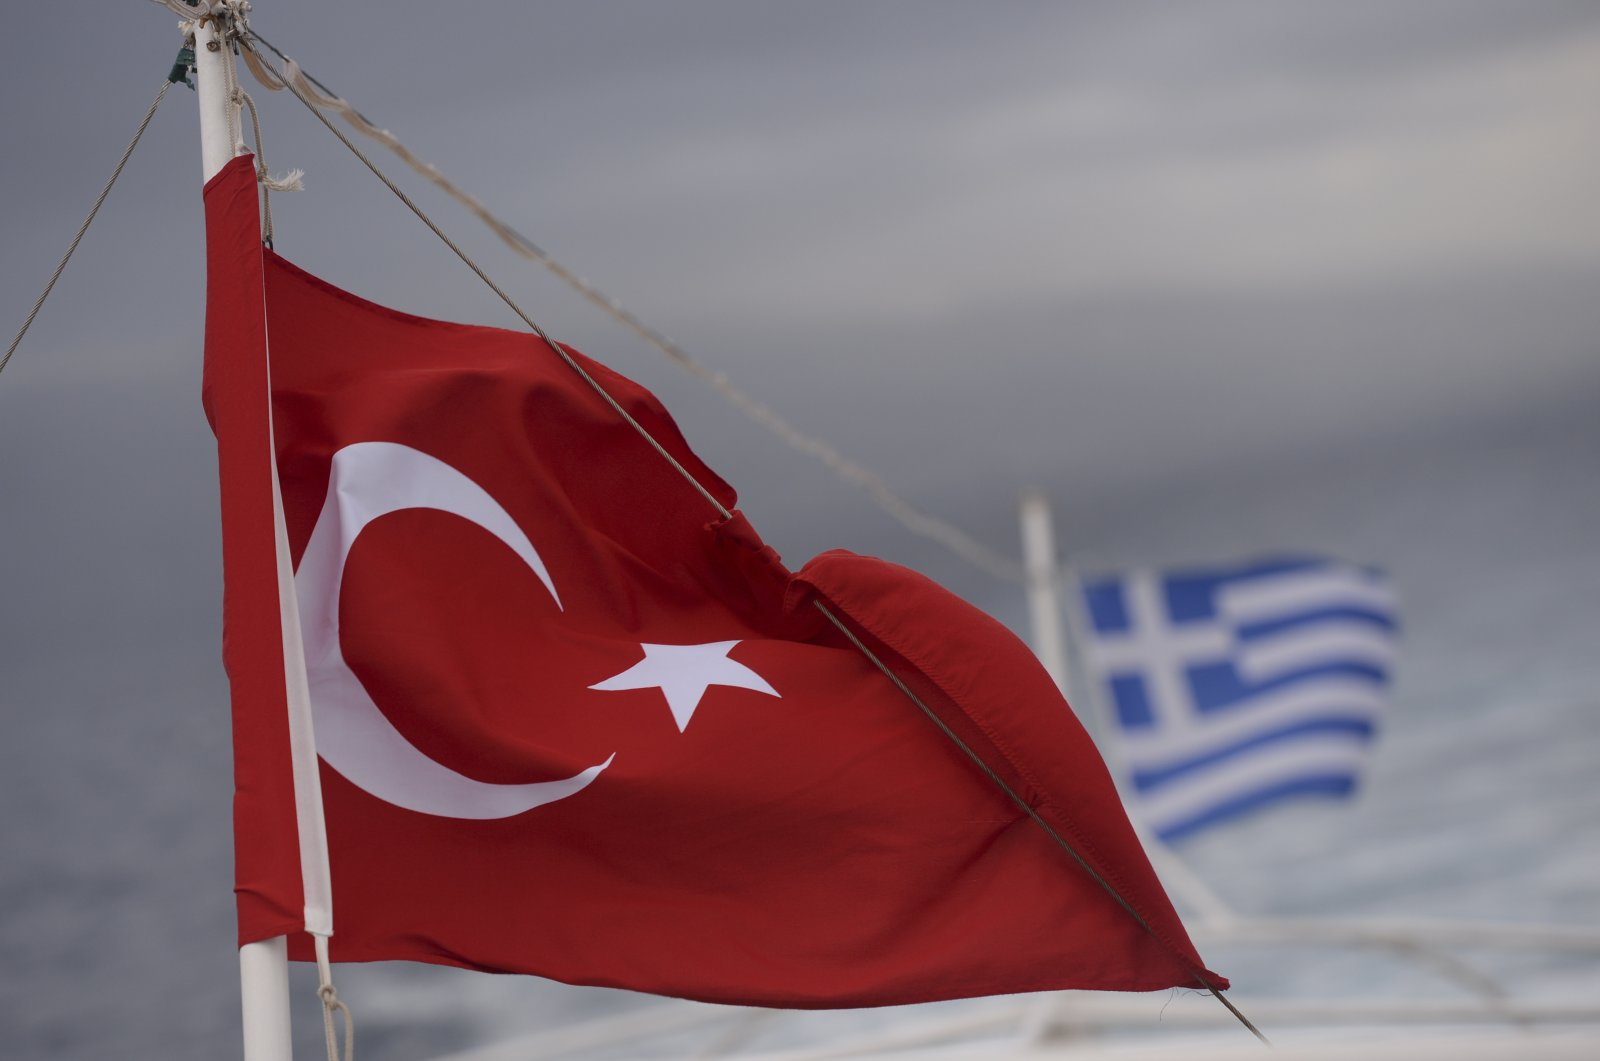 Turkish and Greek flags seen on a ferry from Greek island of Kos to Turkish coastal town of Bodrum, on October 21, 2015. (Photo: Getty Images)